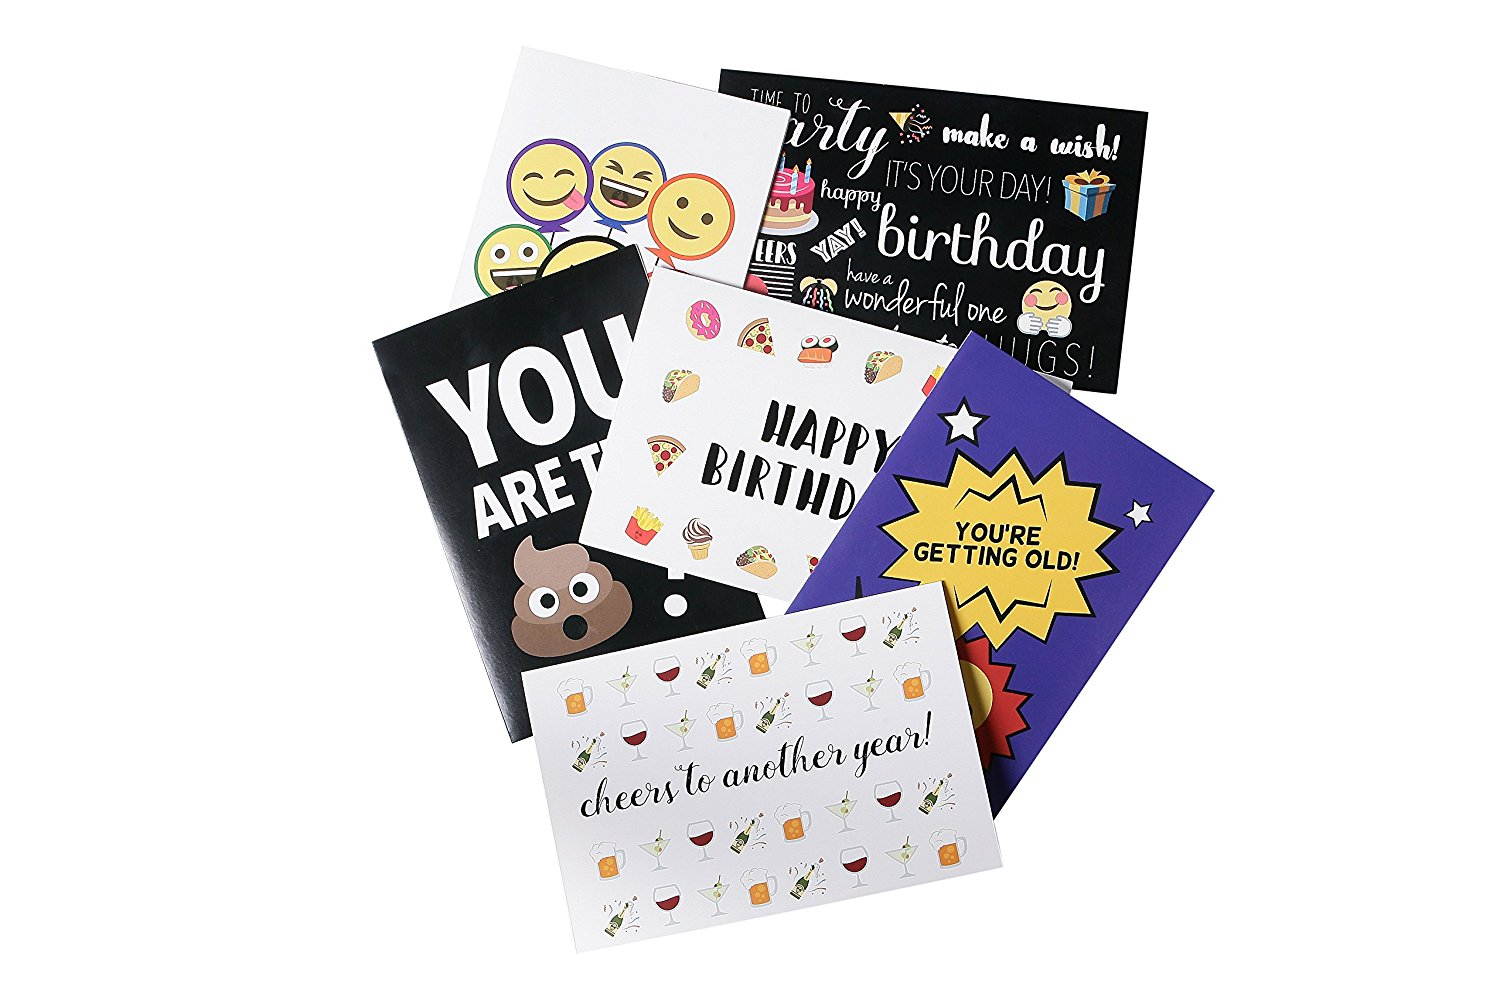 48 birthday greeting cards bulk assortment 6 emoji birthday designs 48 envelopes included - Assorted Birthday Cards In Bulk